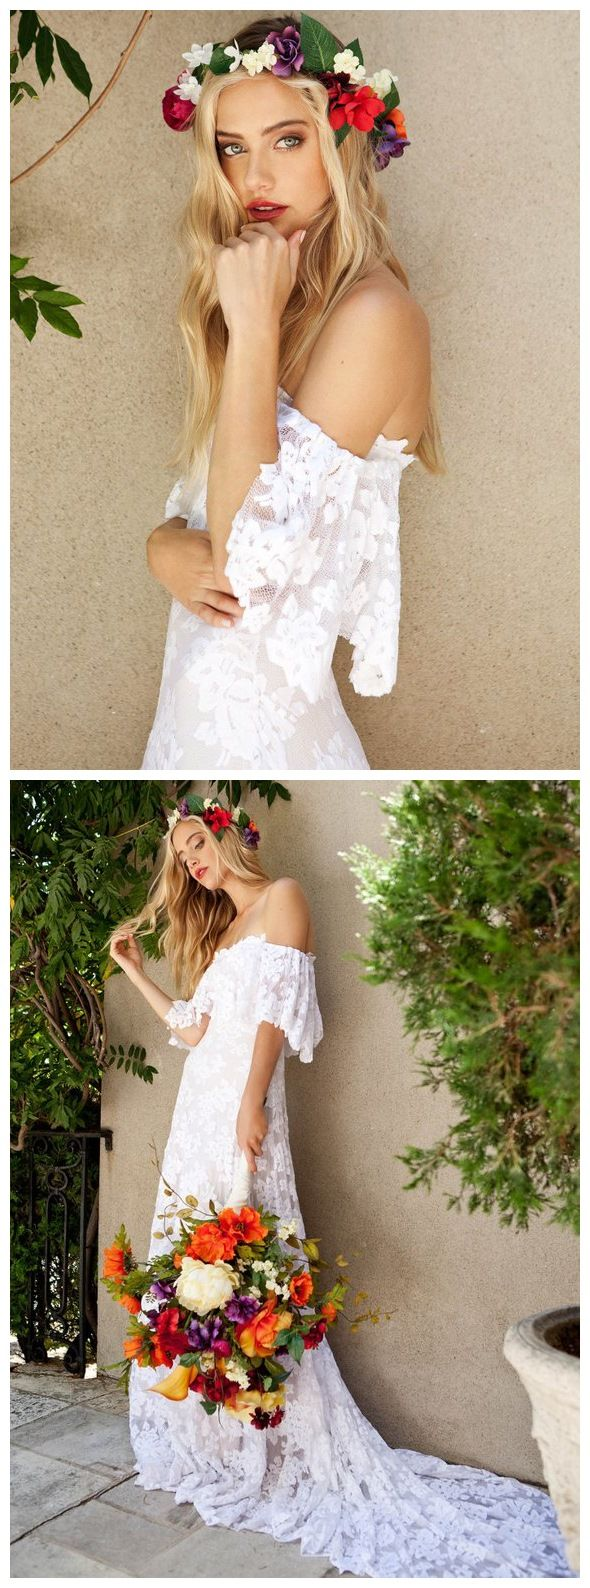 Rustic lace wedding dress  White Off the Shoulder Bohemian Beach Wedding Dresses Boho Lace